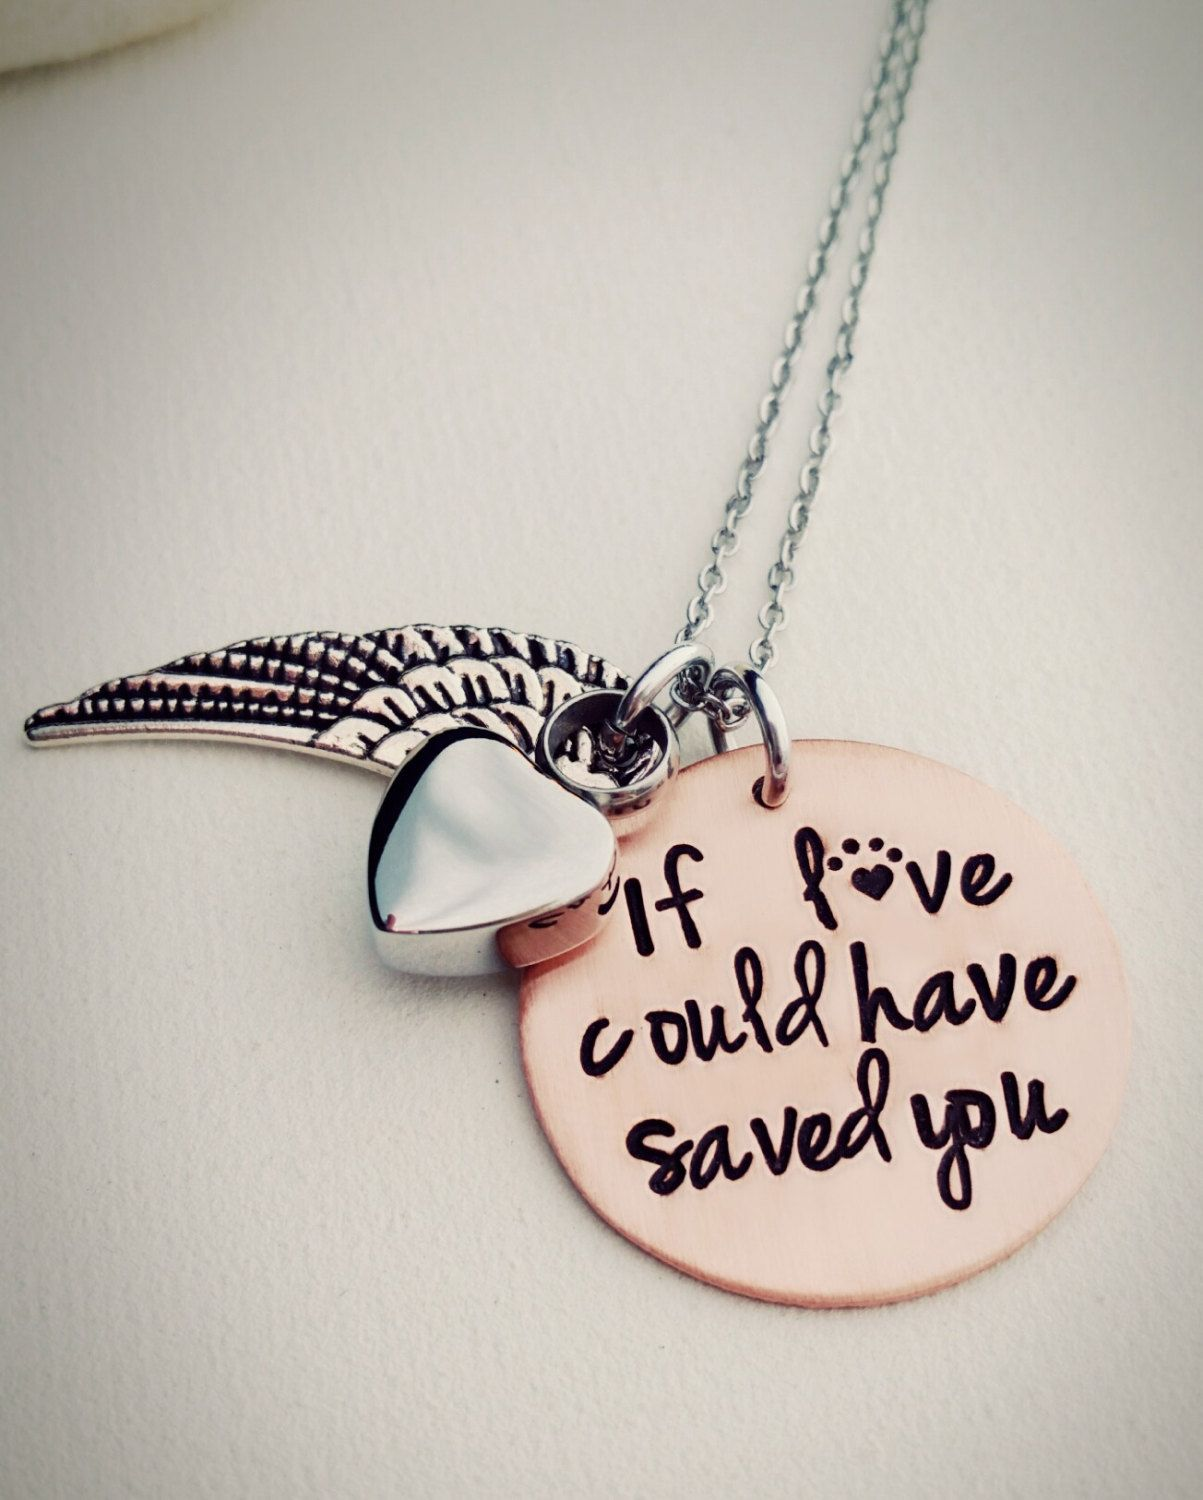 Cremation jewelry urn necklace pet memorial if love could cremation jewelry urn necklace pet memorial if love could have saved you aloadofball Choice Image